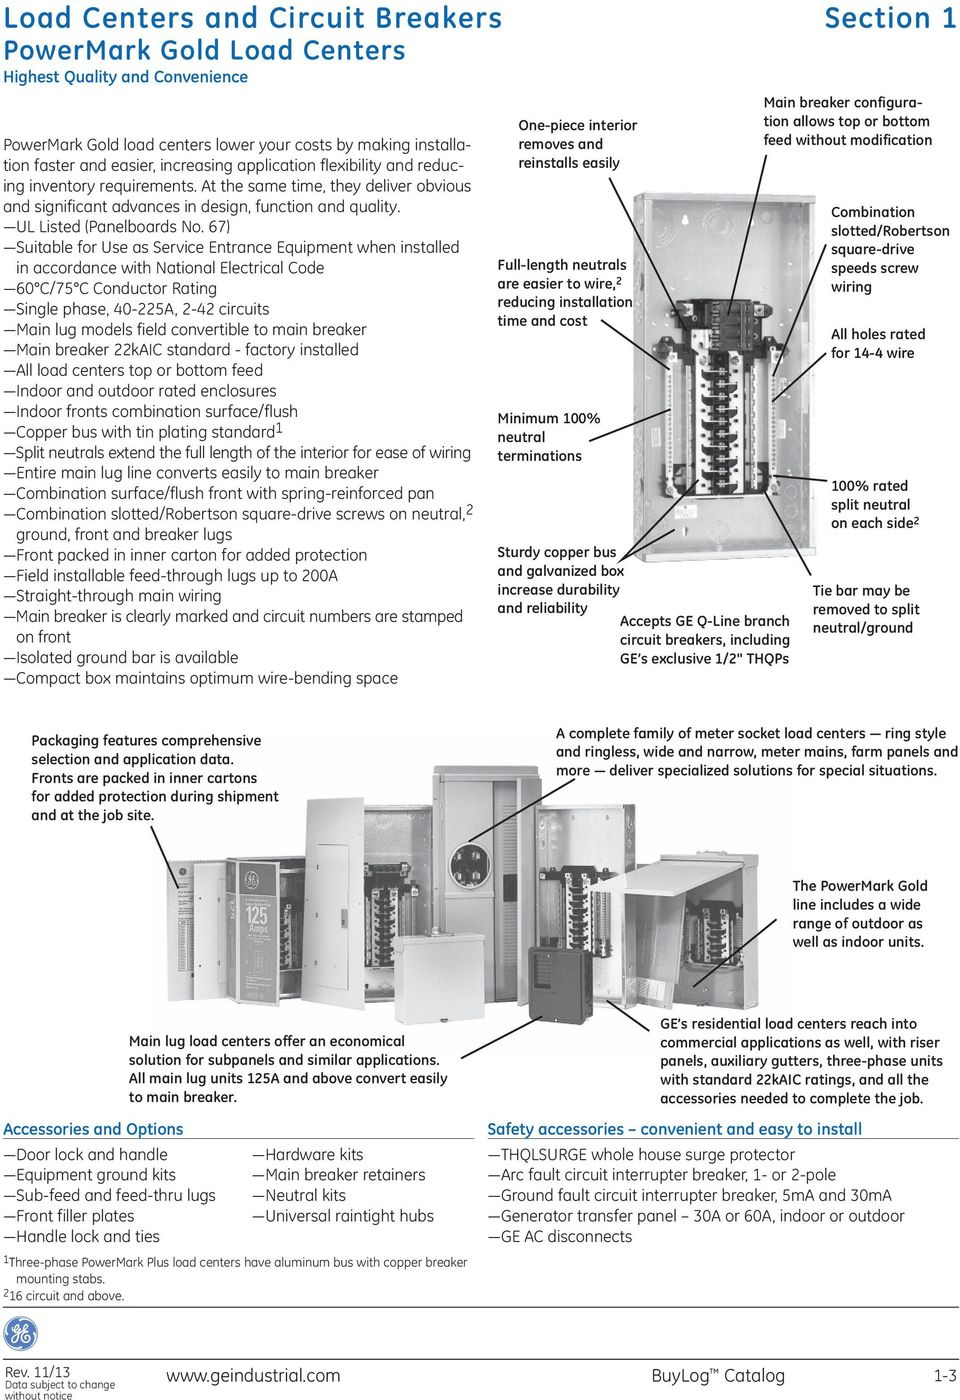 fantastic breaker panel diagram picture collection best images for rh oursweetbakeshop info